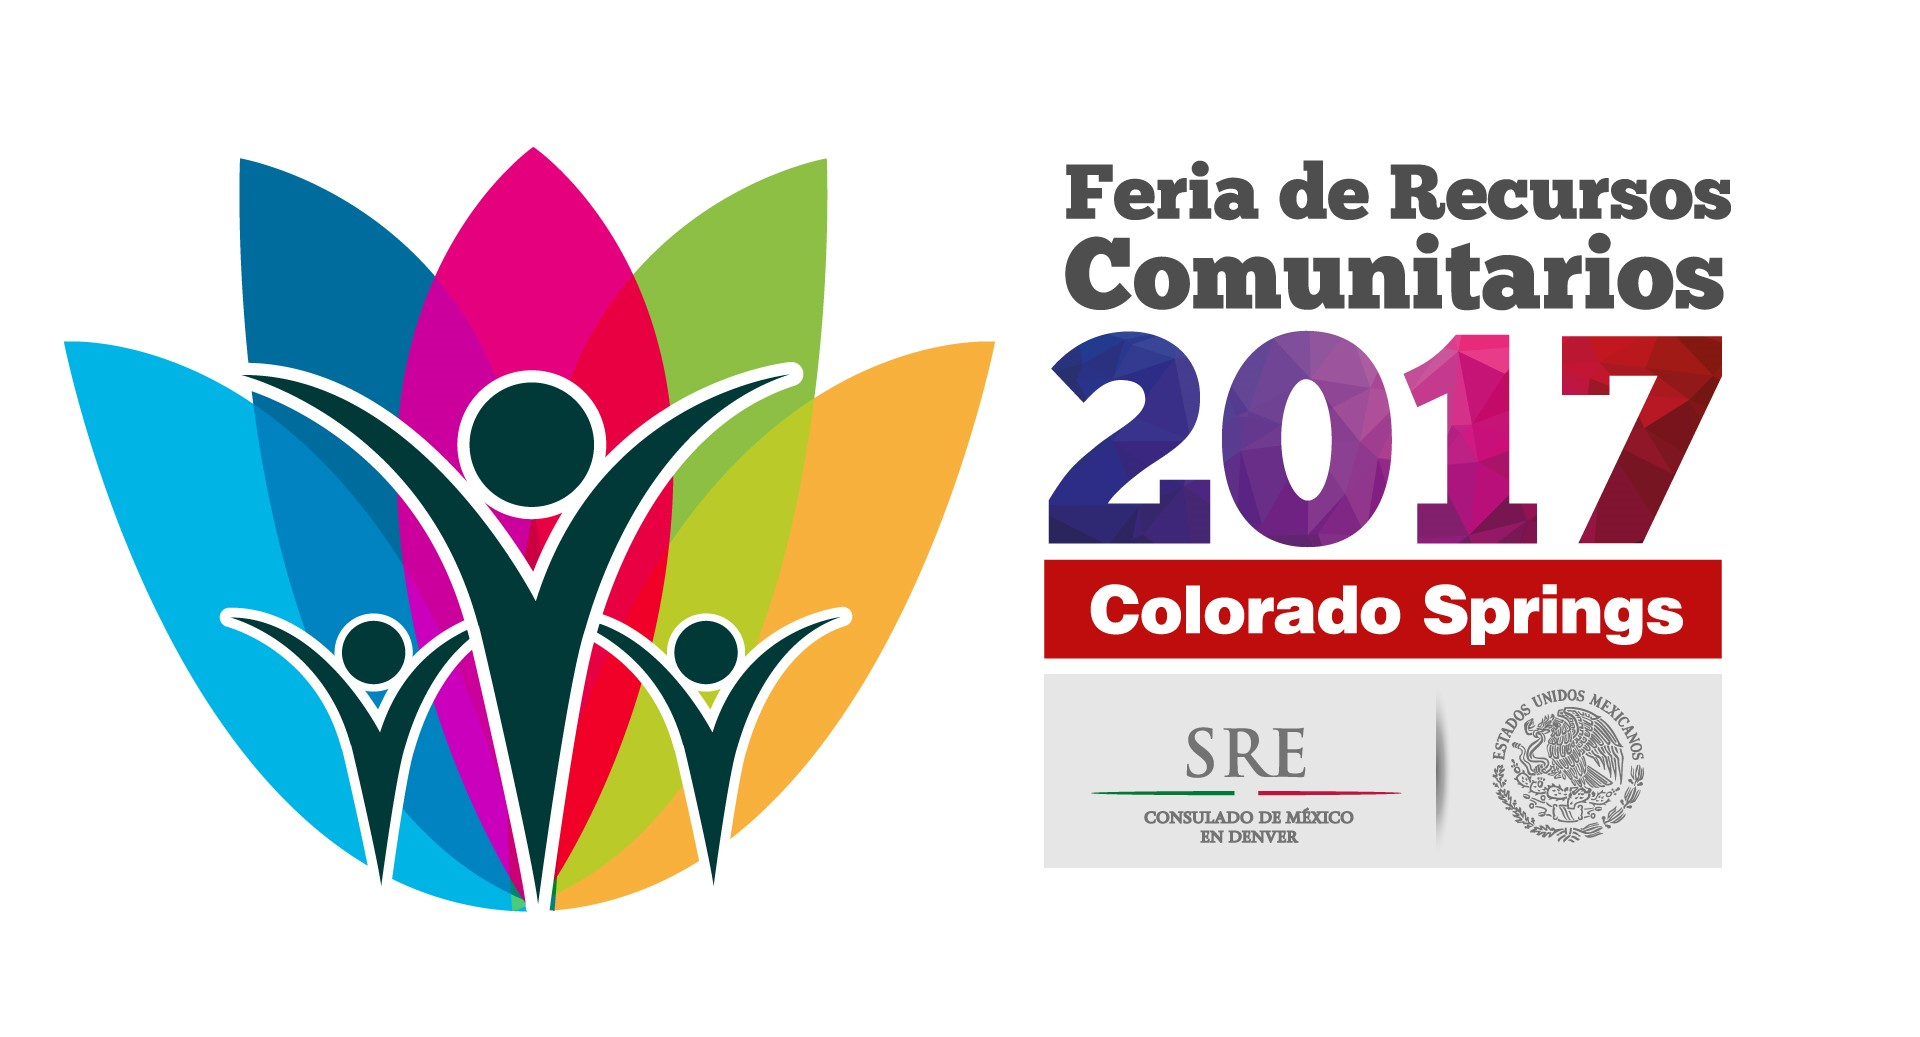 Feria de recursos comunitarios en colorado springs for Mexterior convocatorias